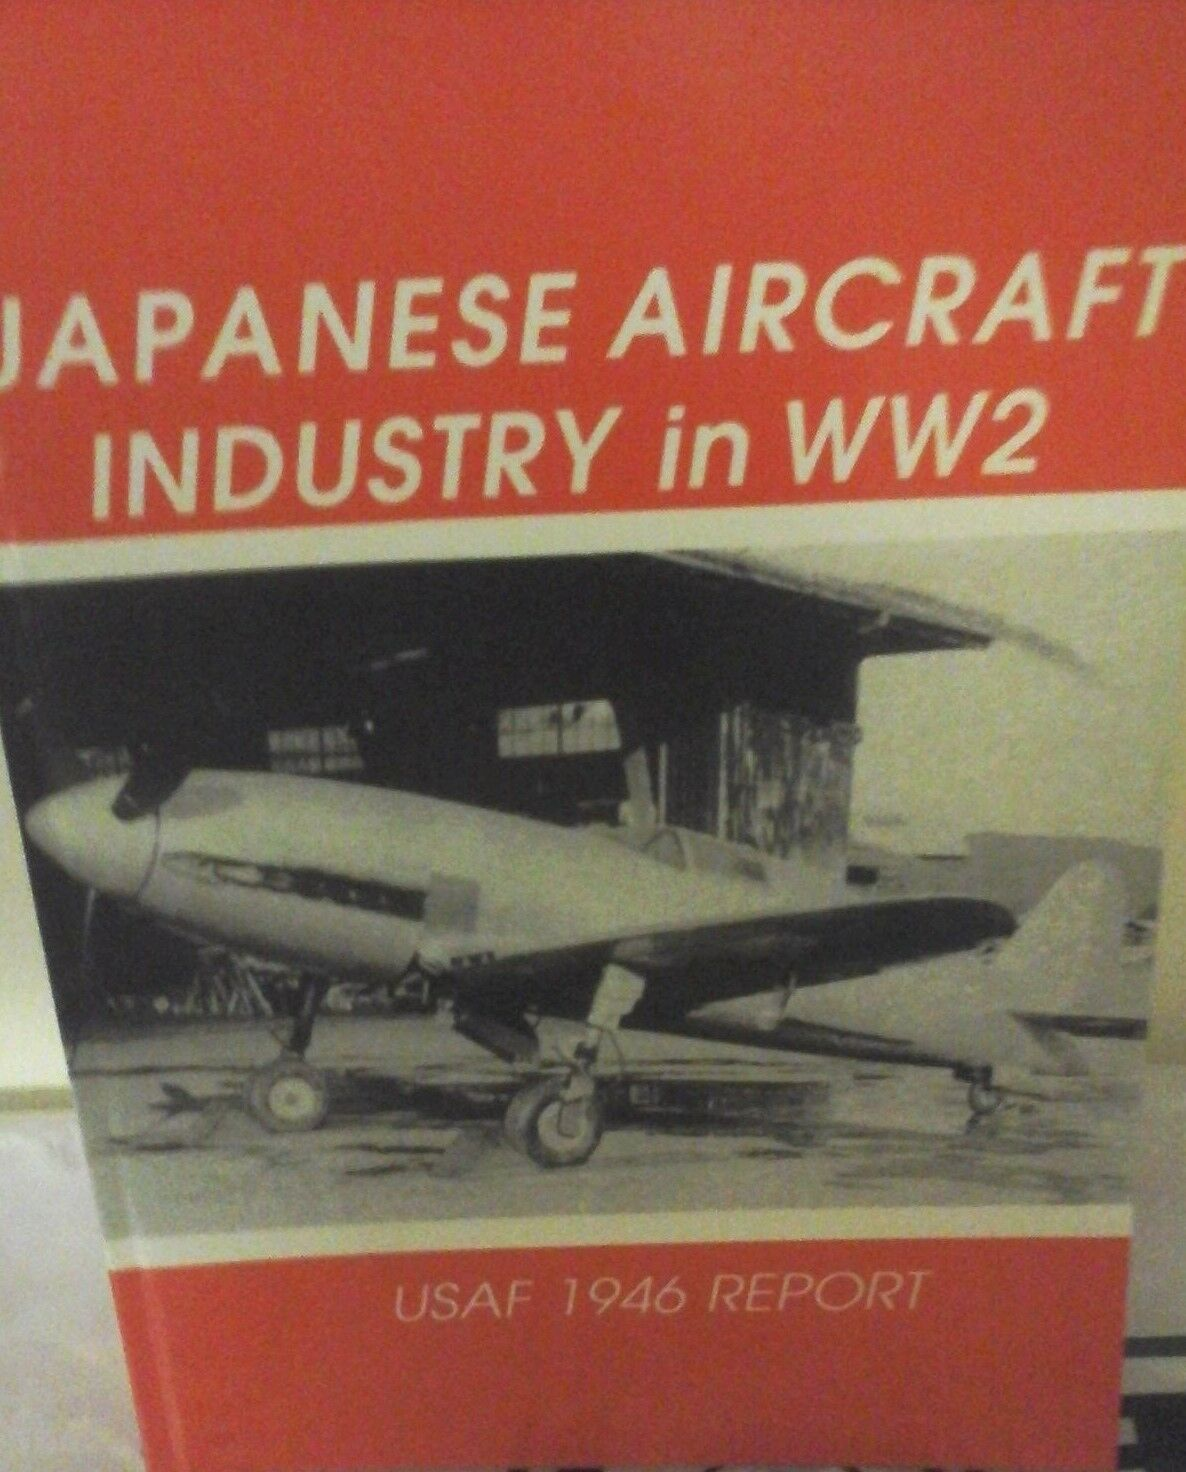 Japanese aircraft industry in W.W. II-USAF 1946 reports-lesser bushbaby Publisher Japan